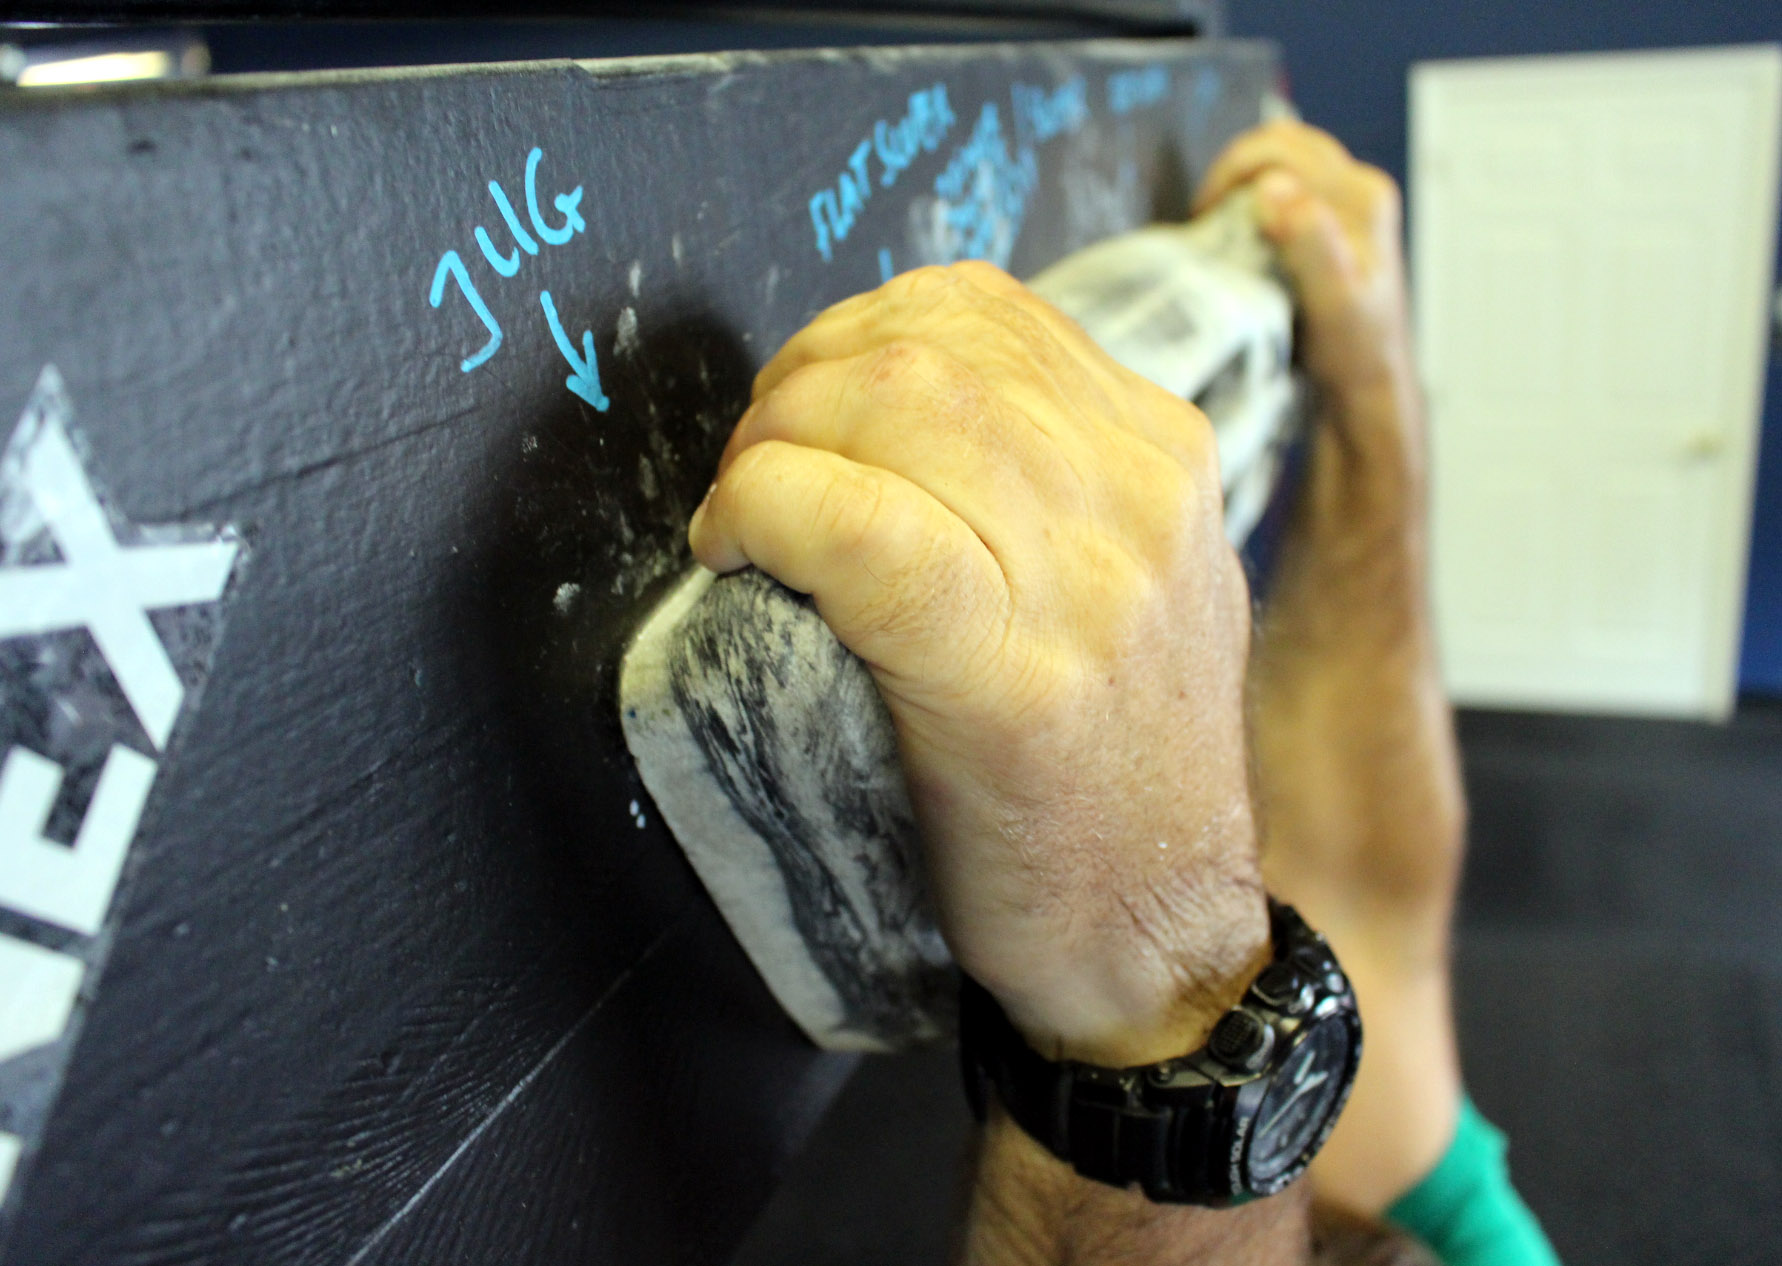 Climbing board (also called Climbing Simulator) to strengthen the grip, pull-ups & upper back